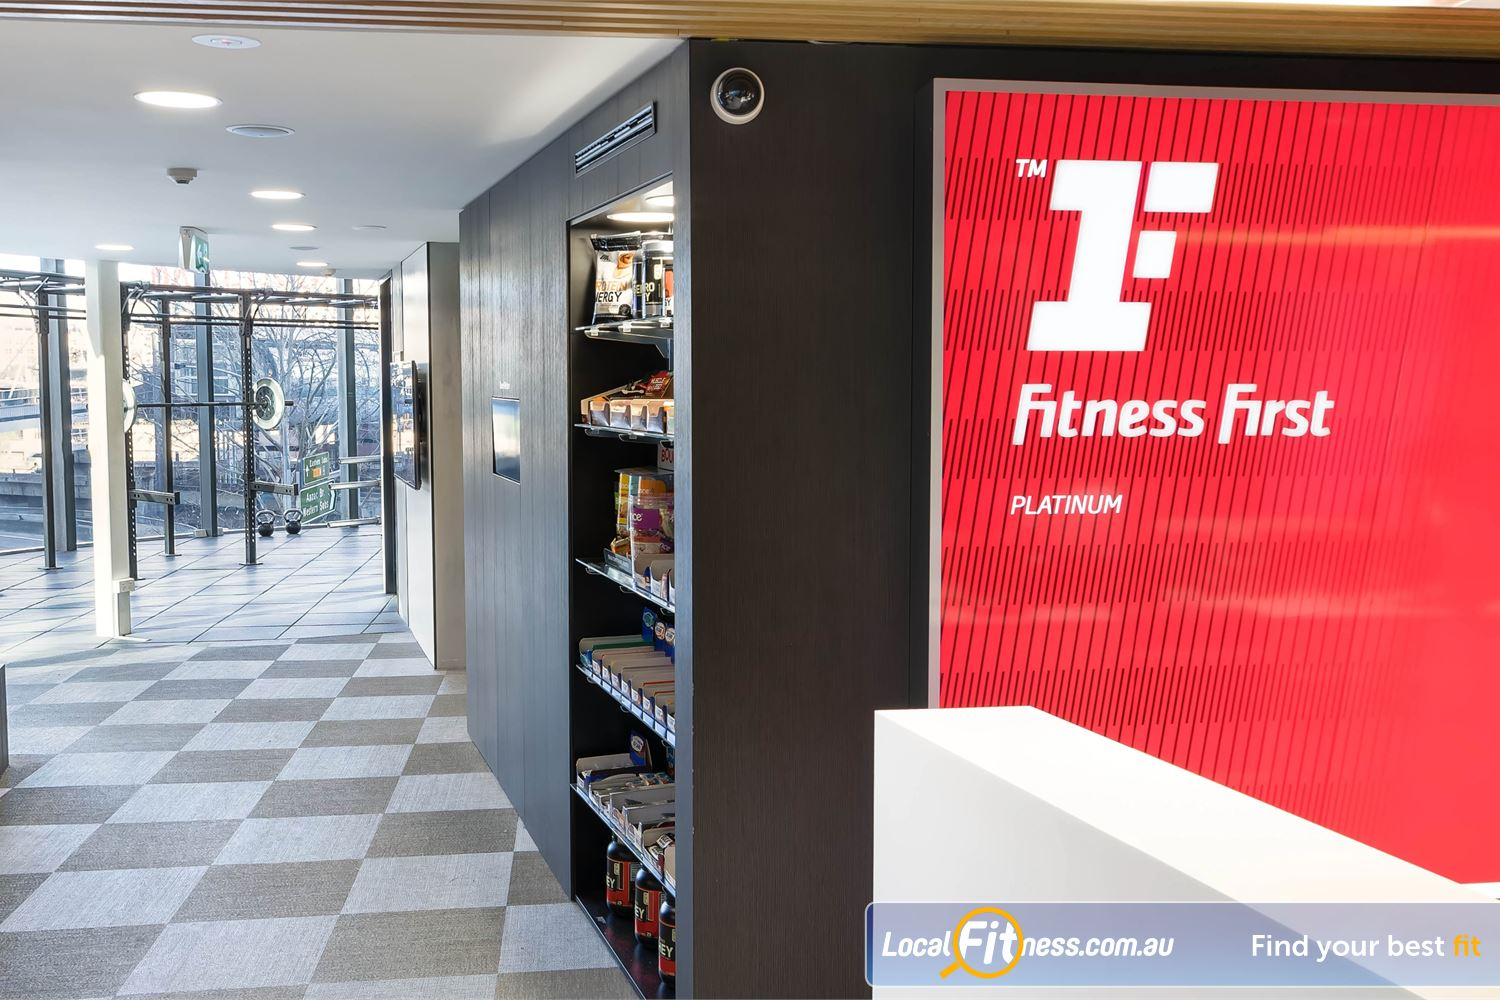 Fitness First Platinum Market St. Sydney Beautiful Harbour side views from Fitness First Platinum Market St Sydney.